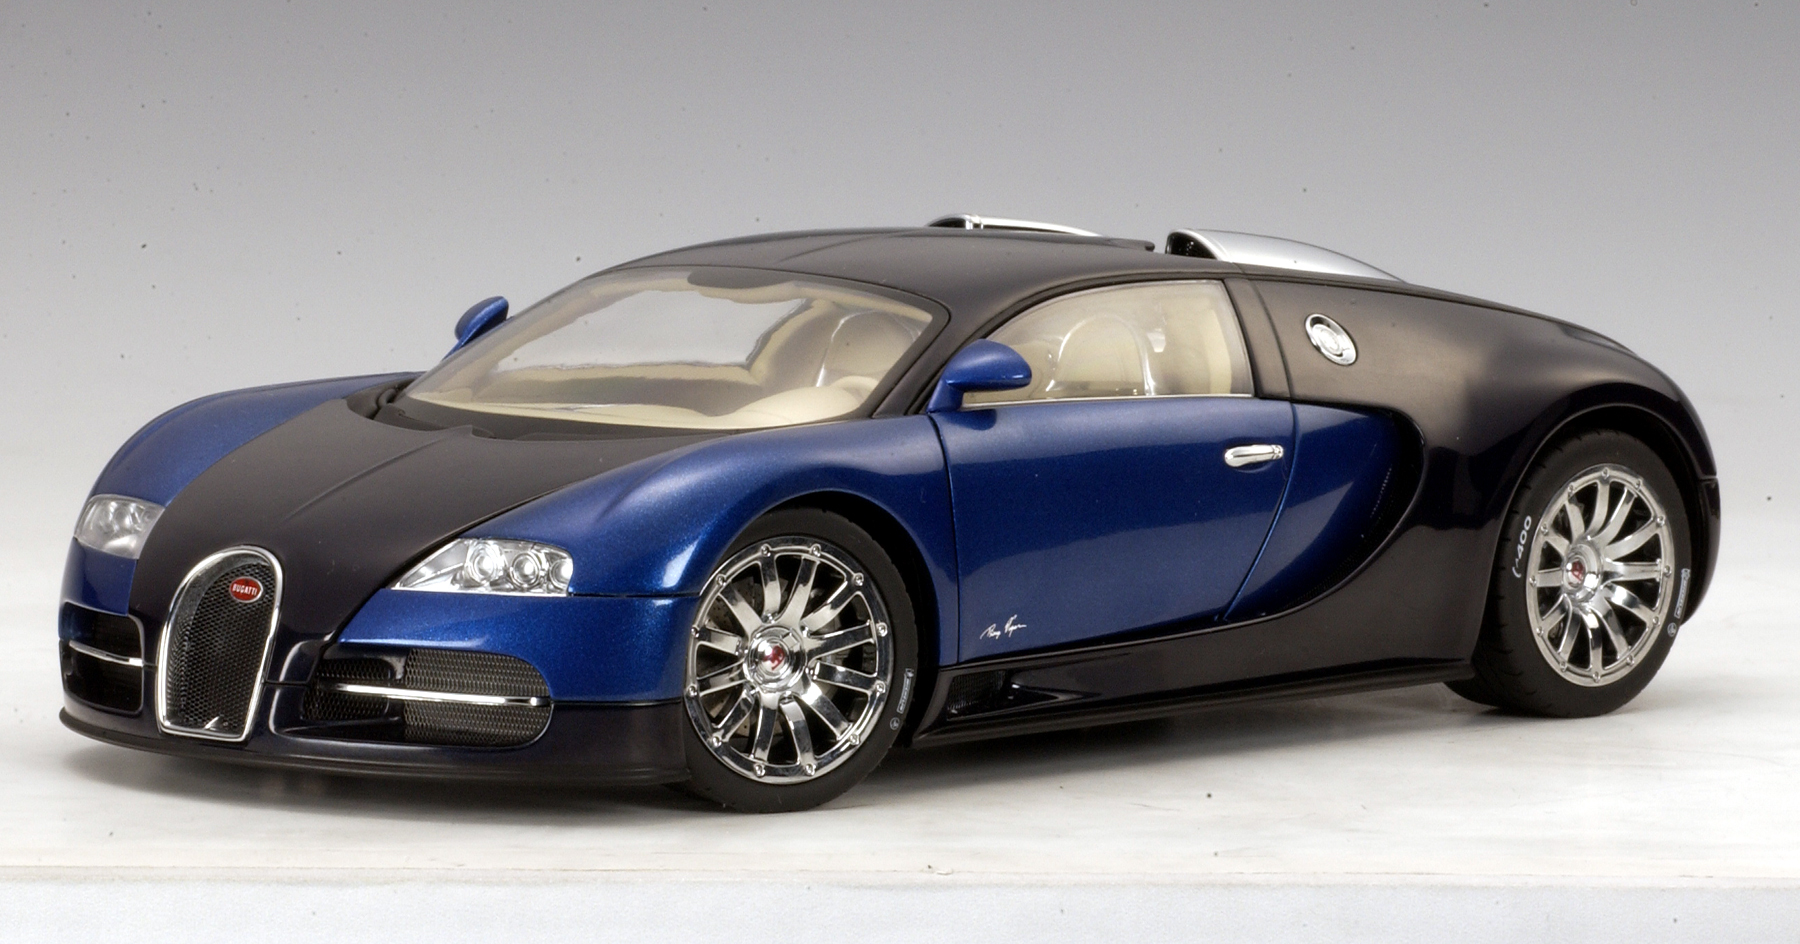 autoart bugatti eb 16 4 veyron show car black blue metallic 70903 in 1 18 scale mdiecast. Black Bedroom Furniture Sets. Home Design Ideas